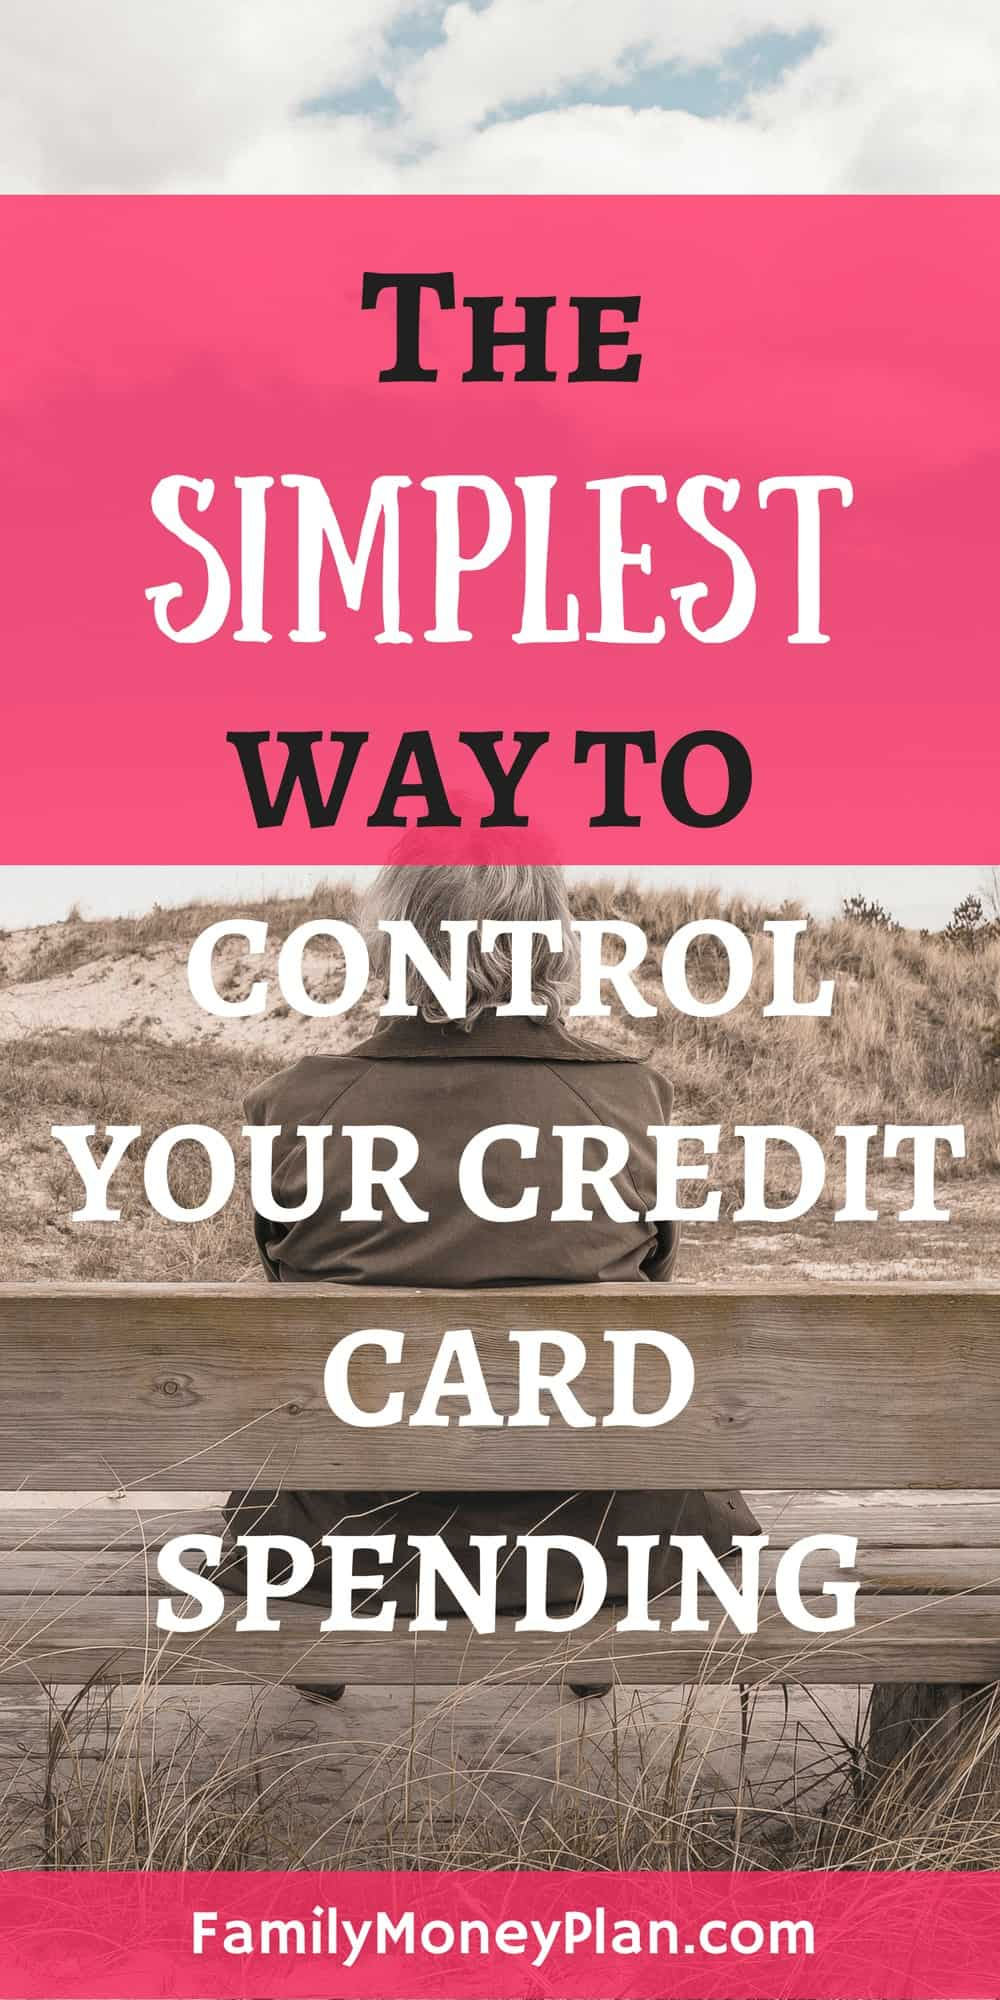 The Simplest Way To Control Your Credit Card Spending | Budgeting | Credit Cards | Managing Money